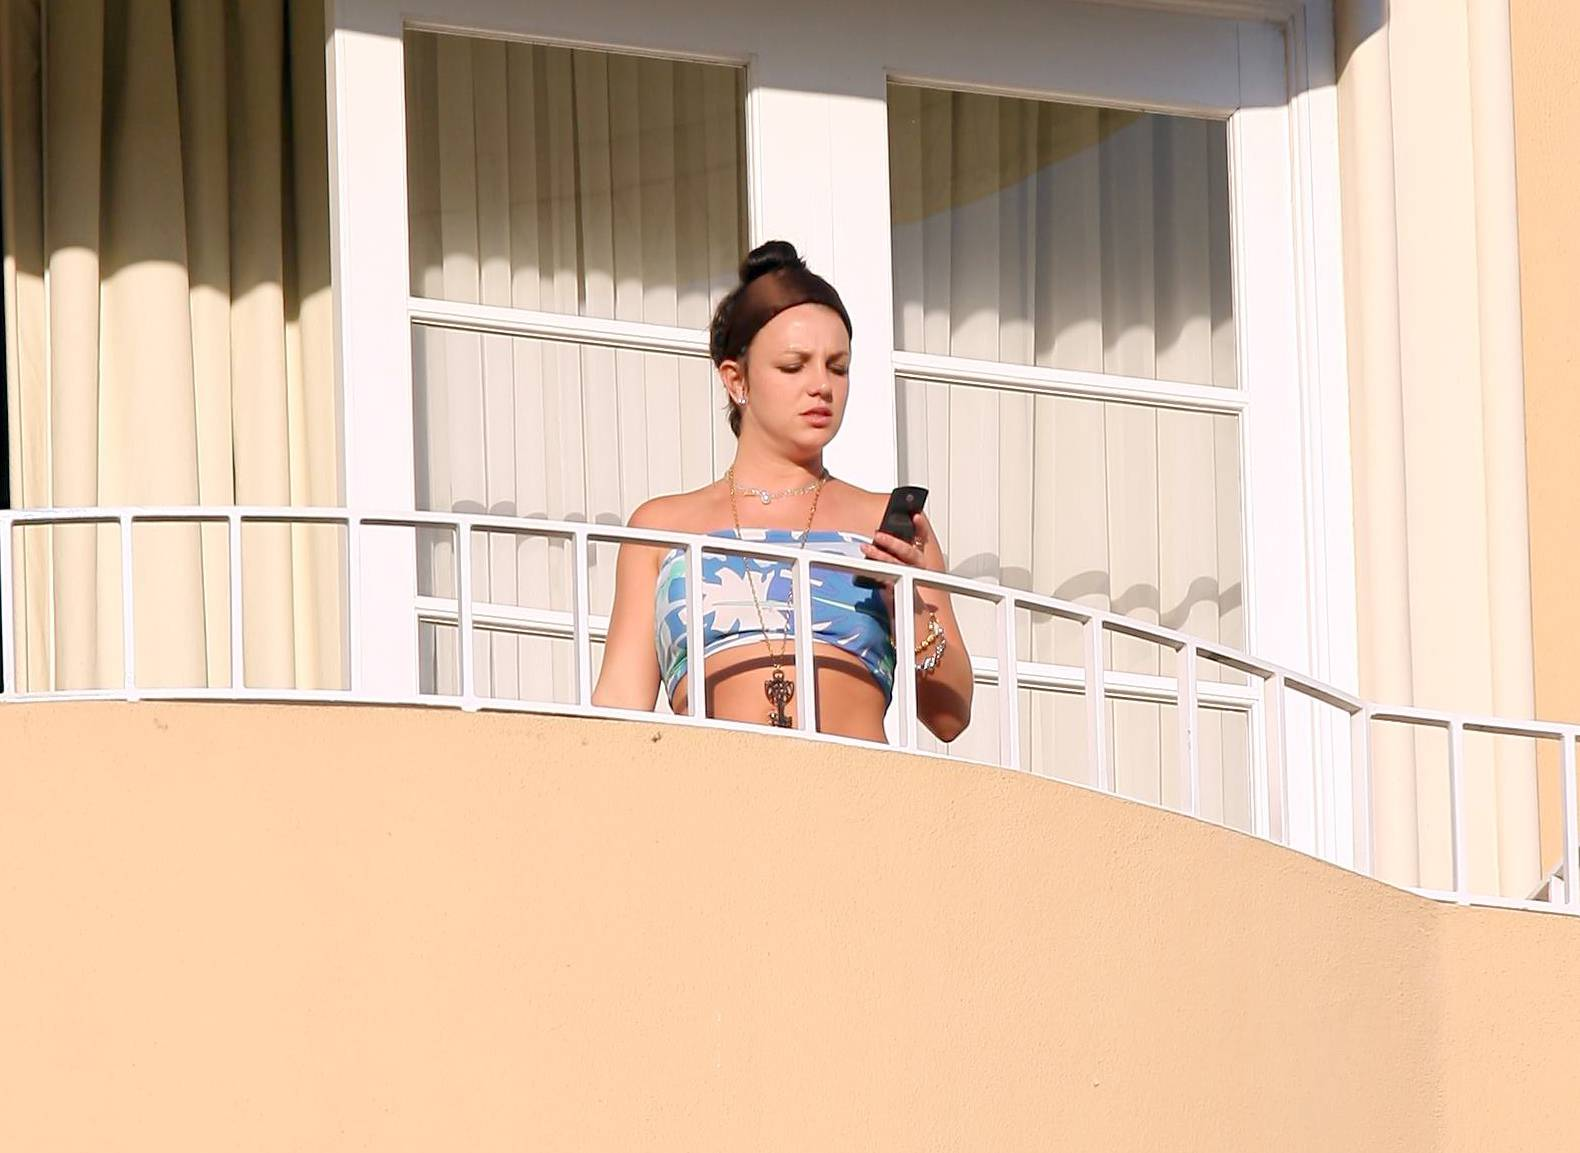 57852_celeb-city.eu_Britney_Spears_at_hotel_in_Beverly_Hills_31_123_1094lo.jpg